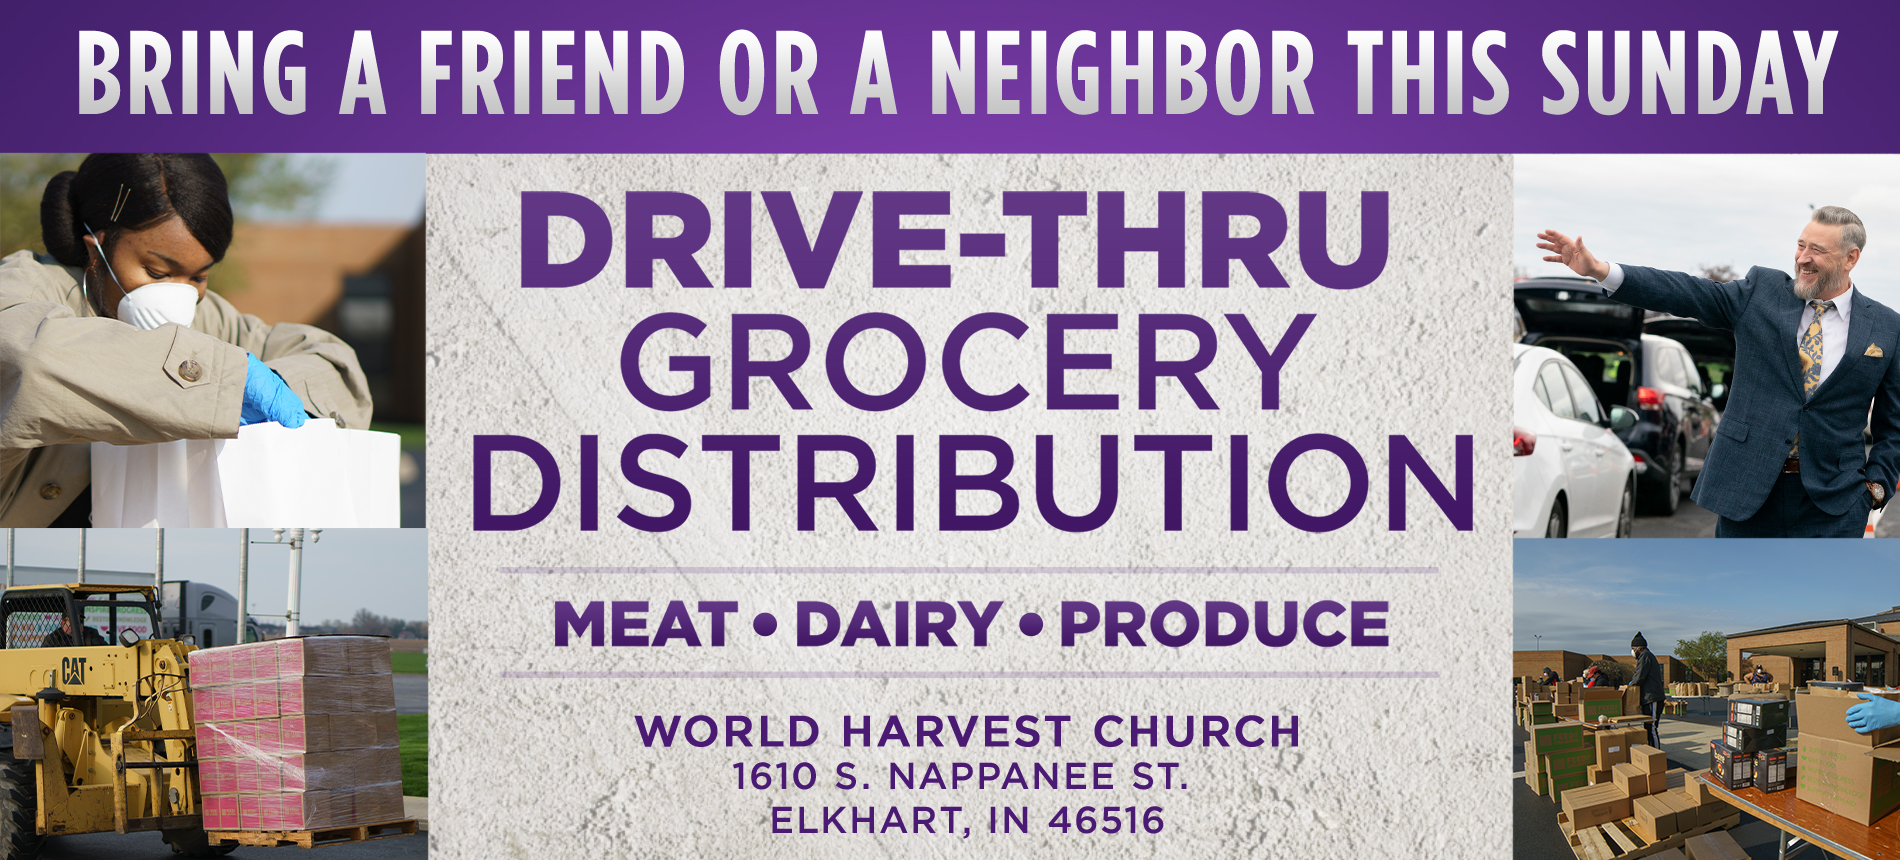 Drive-Thru Grocery Distribution Meat, Dairy, Produce World Harvest Church 1610 S. Nappanee St. Elkhart, IN 46516